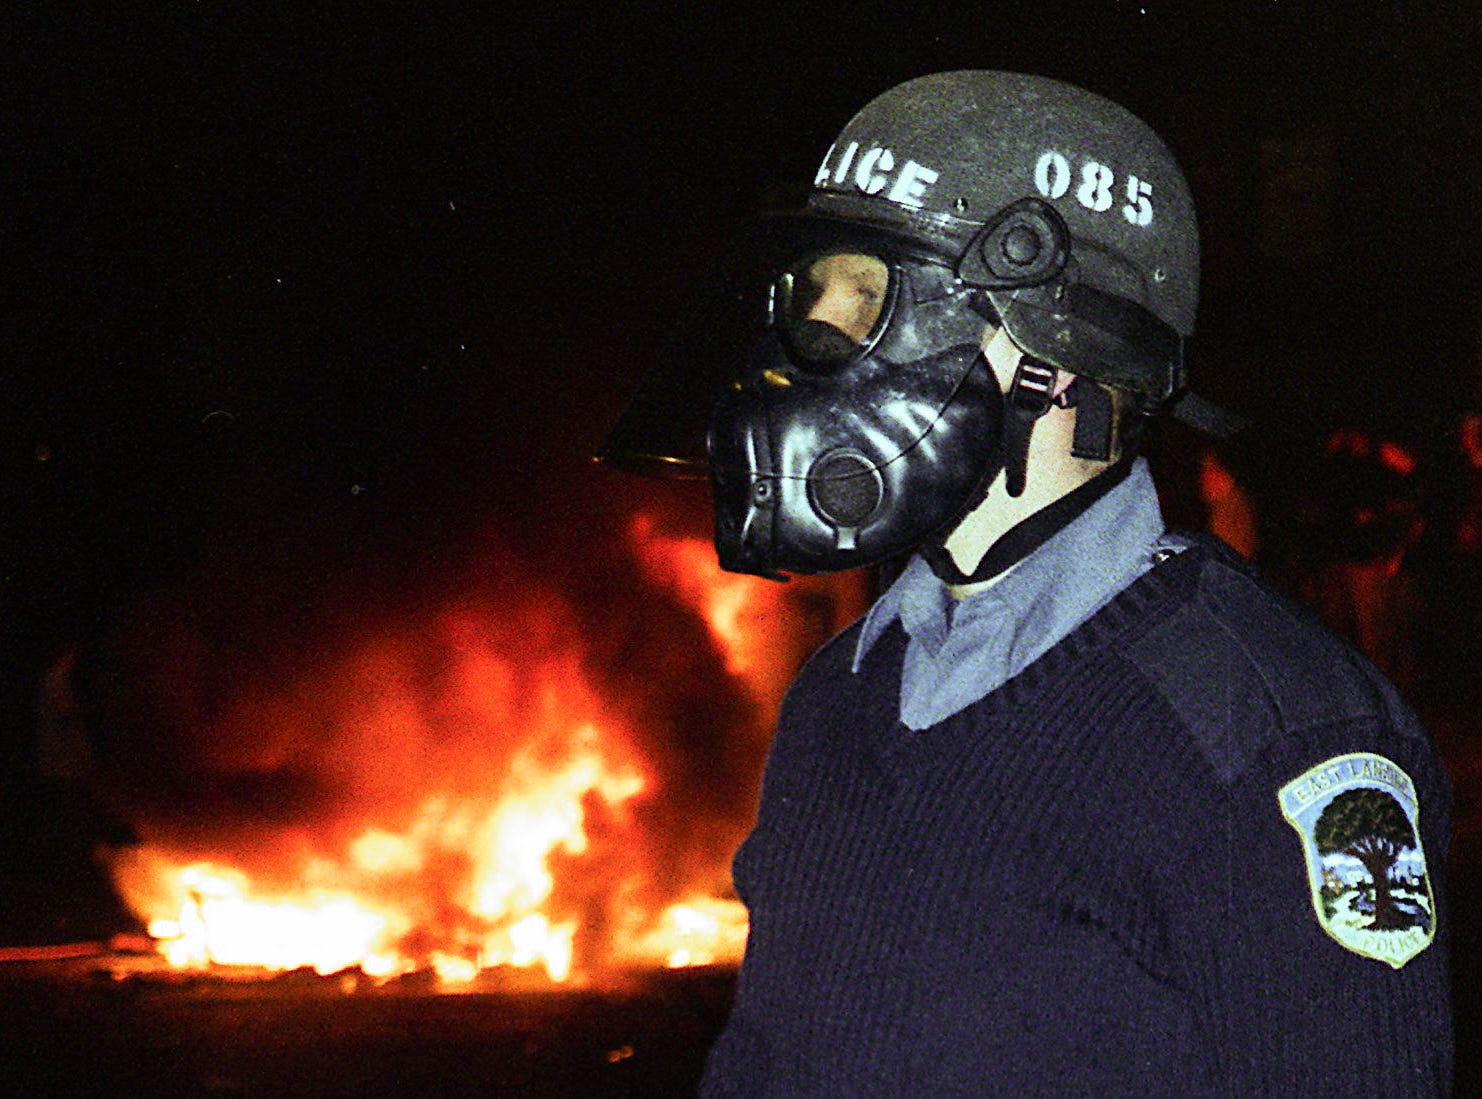 A police officer in a gas mask stands near Grand River Avenue to keep onlookers away from the fires burning in Cedar Village on Saturday, March 27, 1999, in East Lansing.